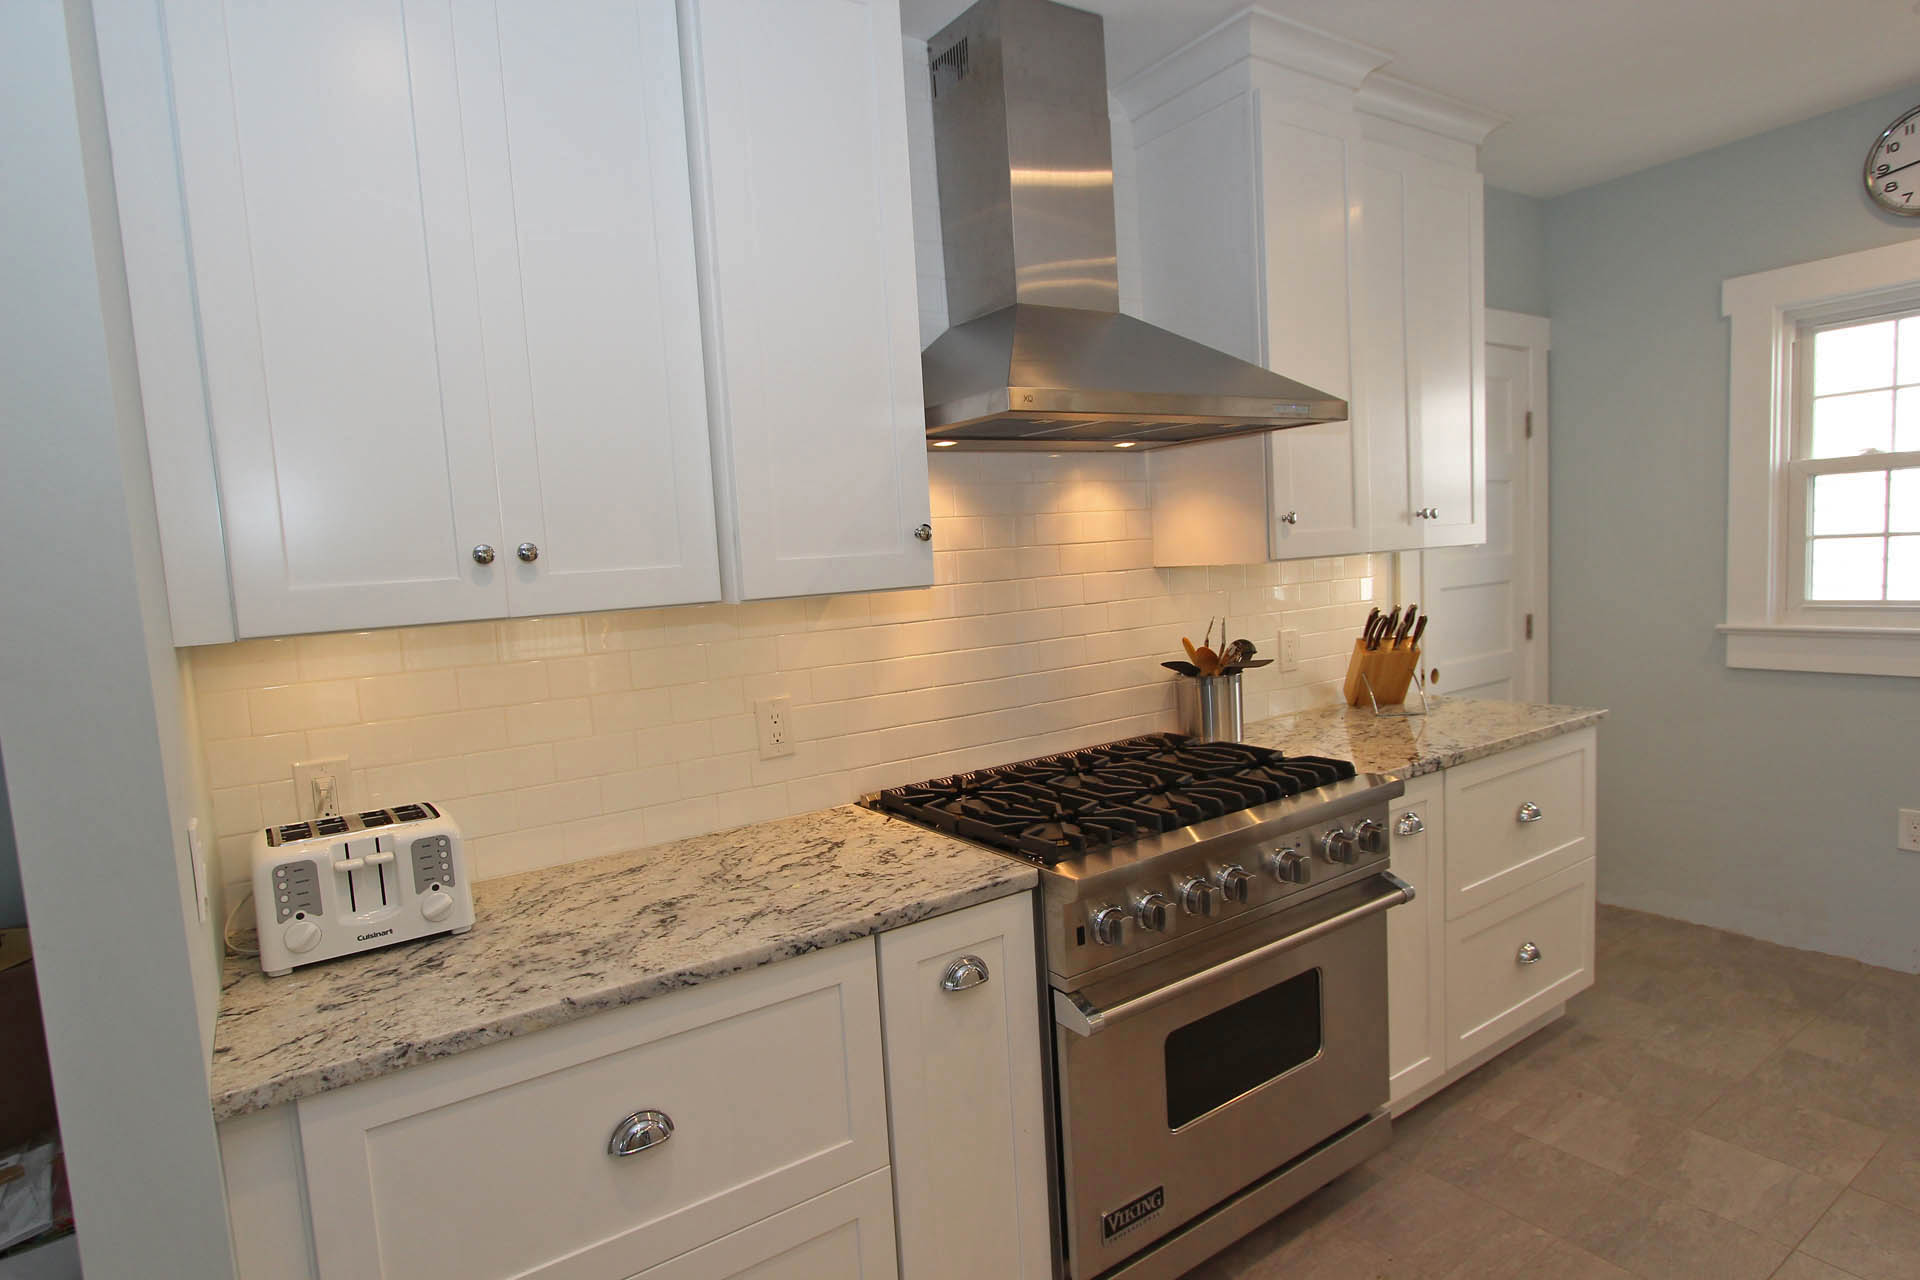 Bayhead beach house cabinets with crown molding